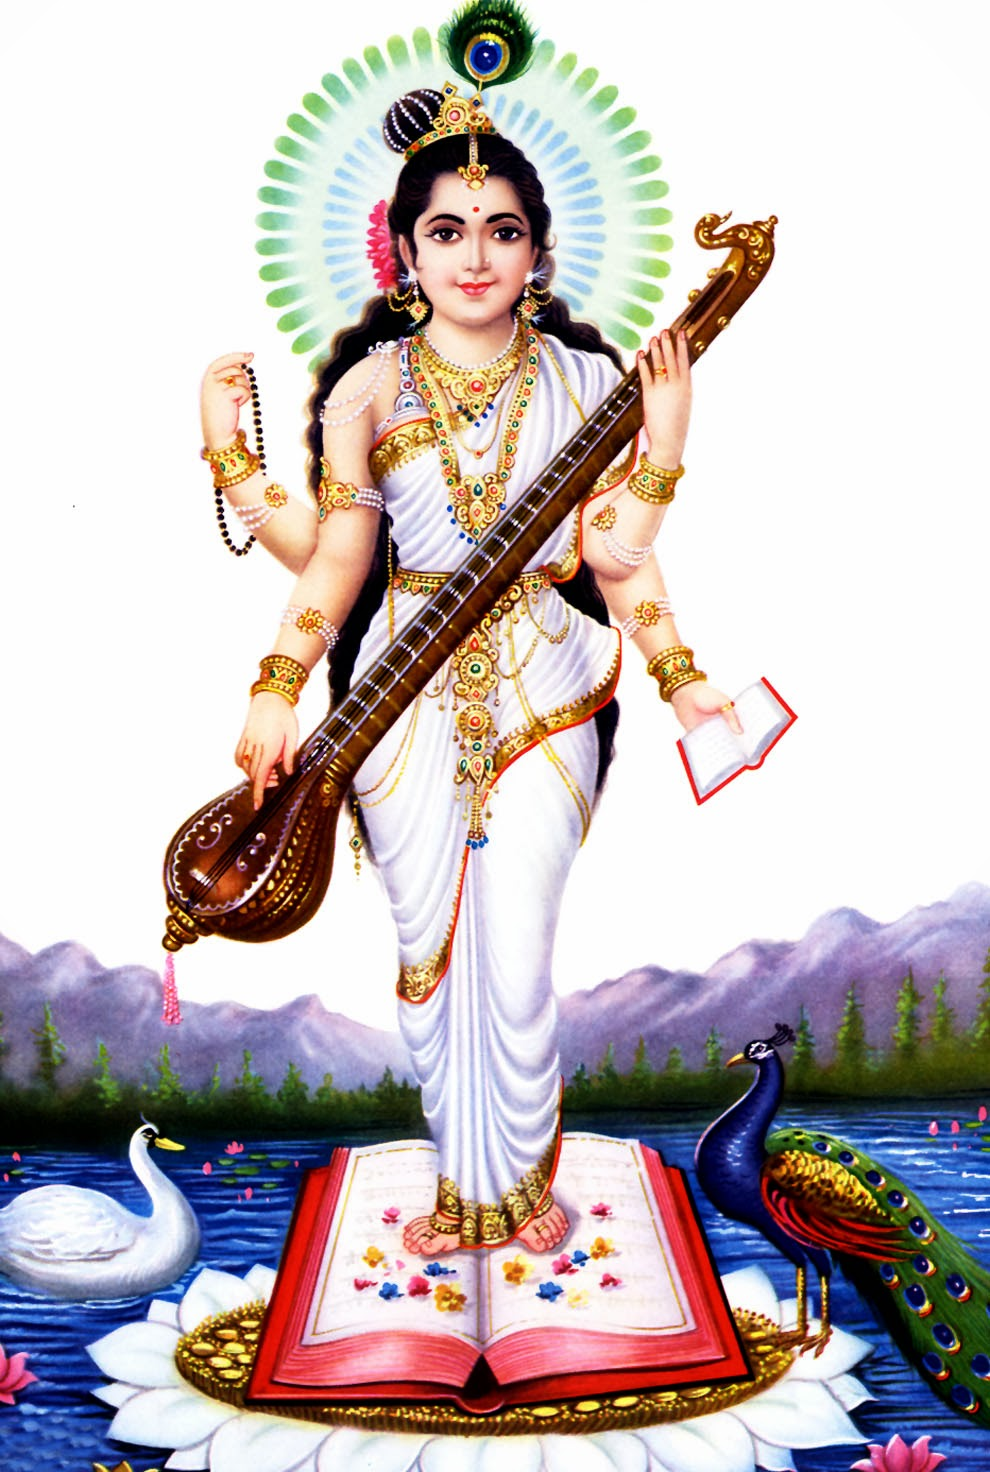 Beautiful Wallpaper Lord Saraswati - Wallpaper%2Bof%2BSaraswati%2BMata%2B%25287%2529  Photograph_30516.jpg